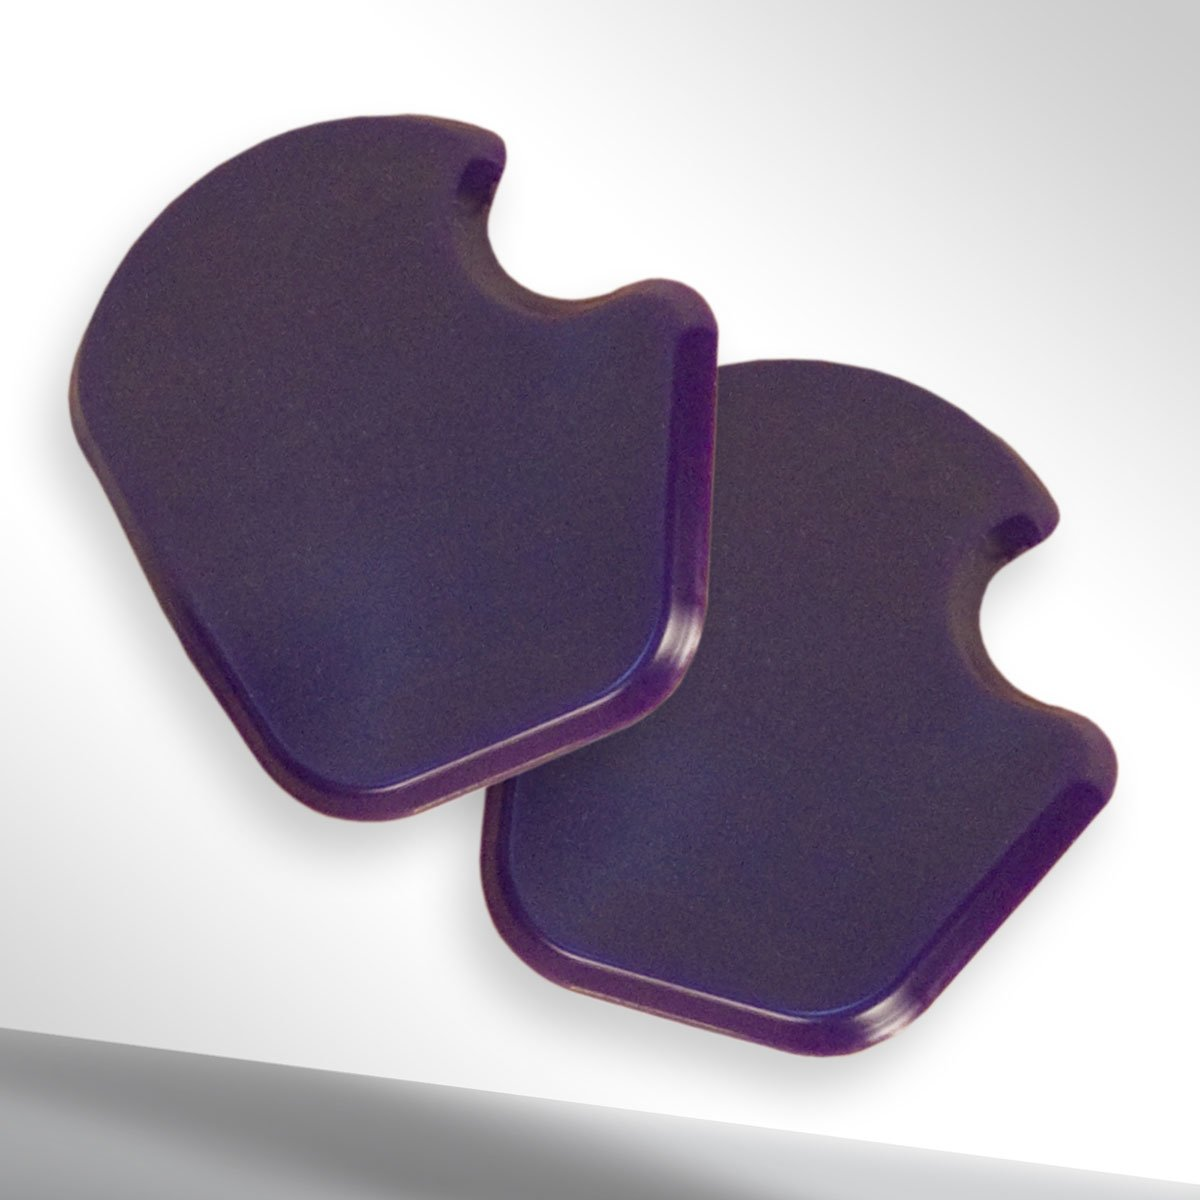 Reuseable gel dancer's pads